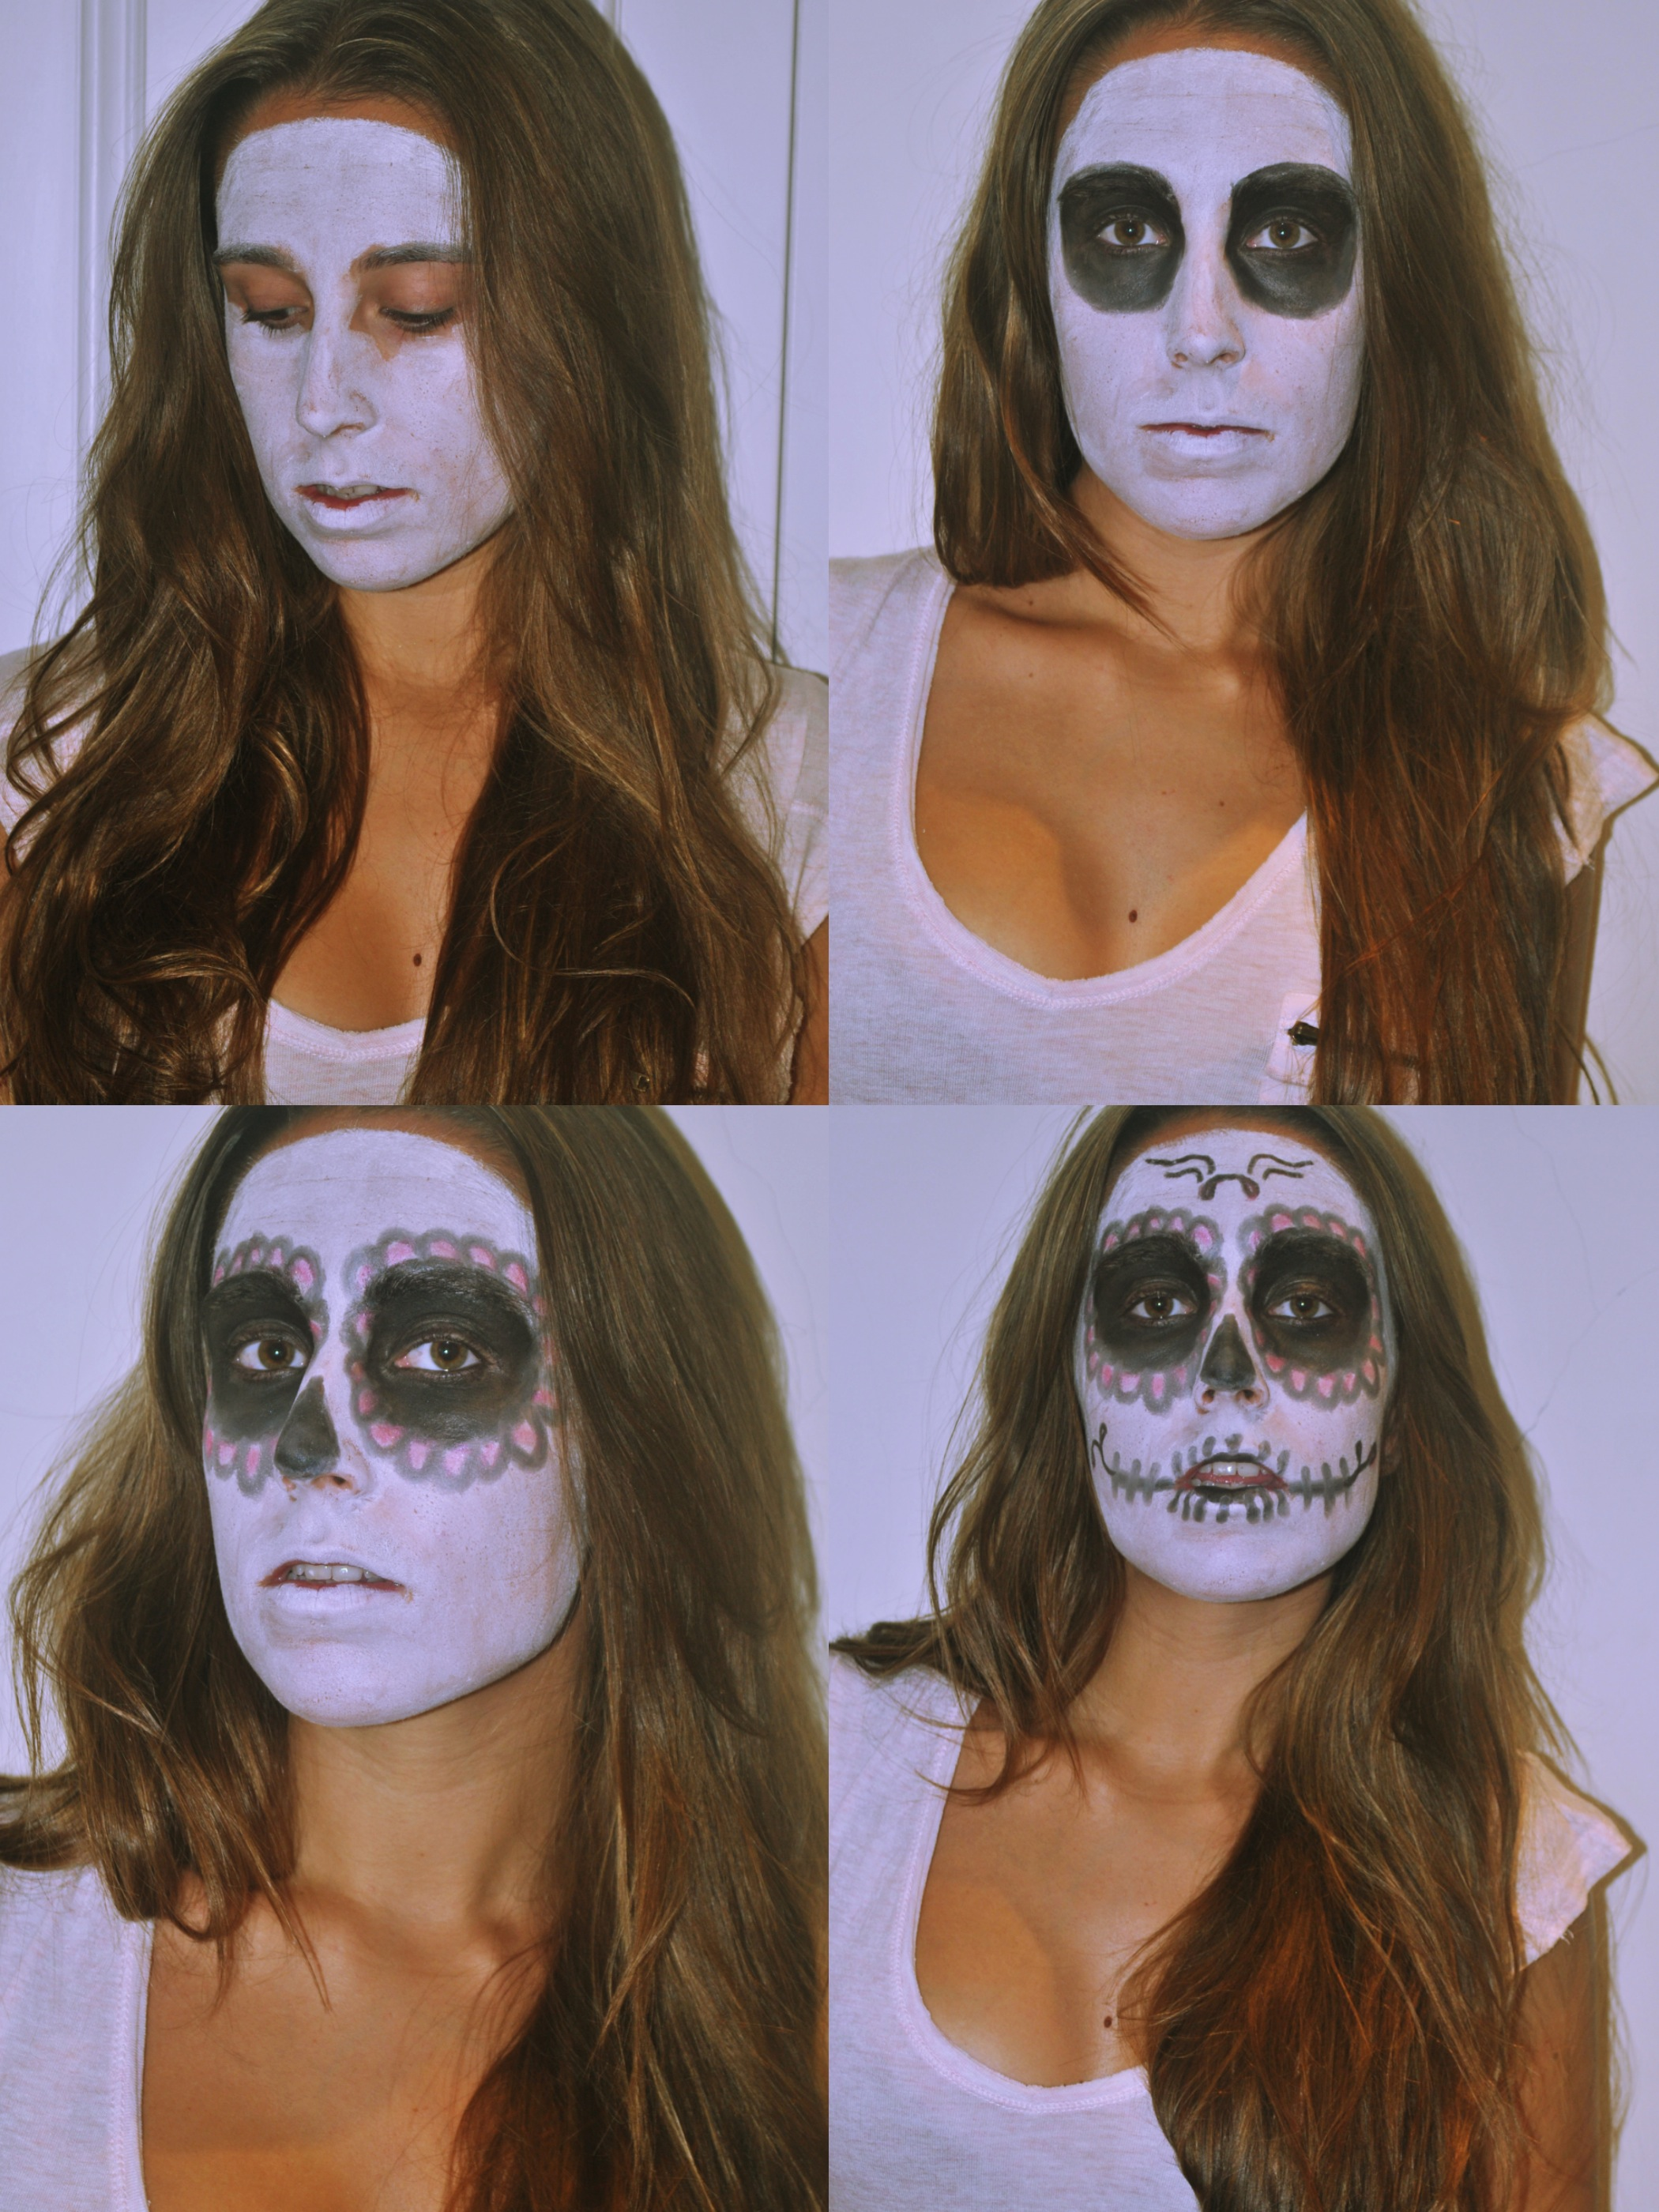 This first costume is super easy to do. I really like mexican catrinas and sugar skulls, I find them very cool and pretty. The outfit is pretty simple!